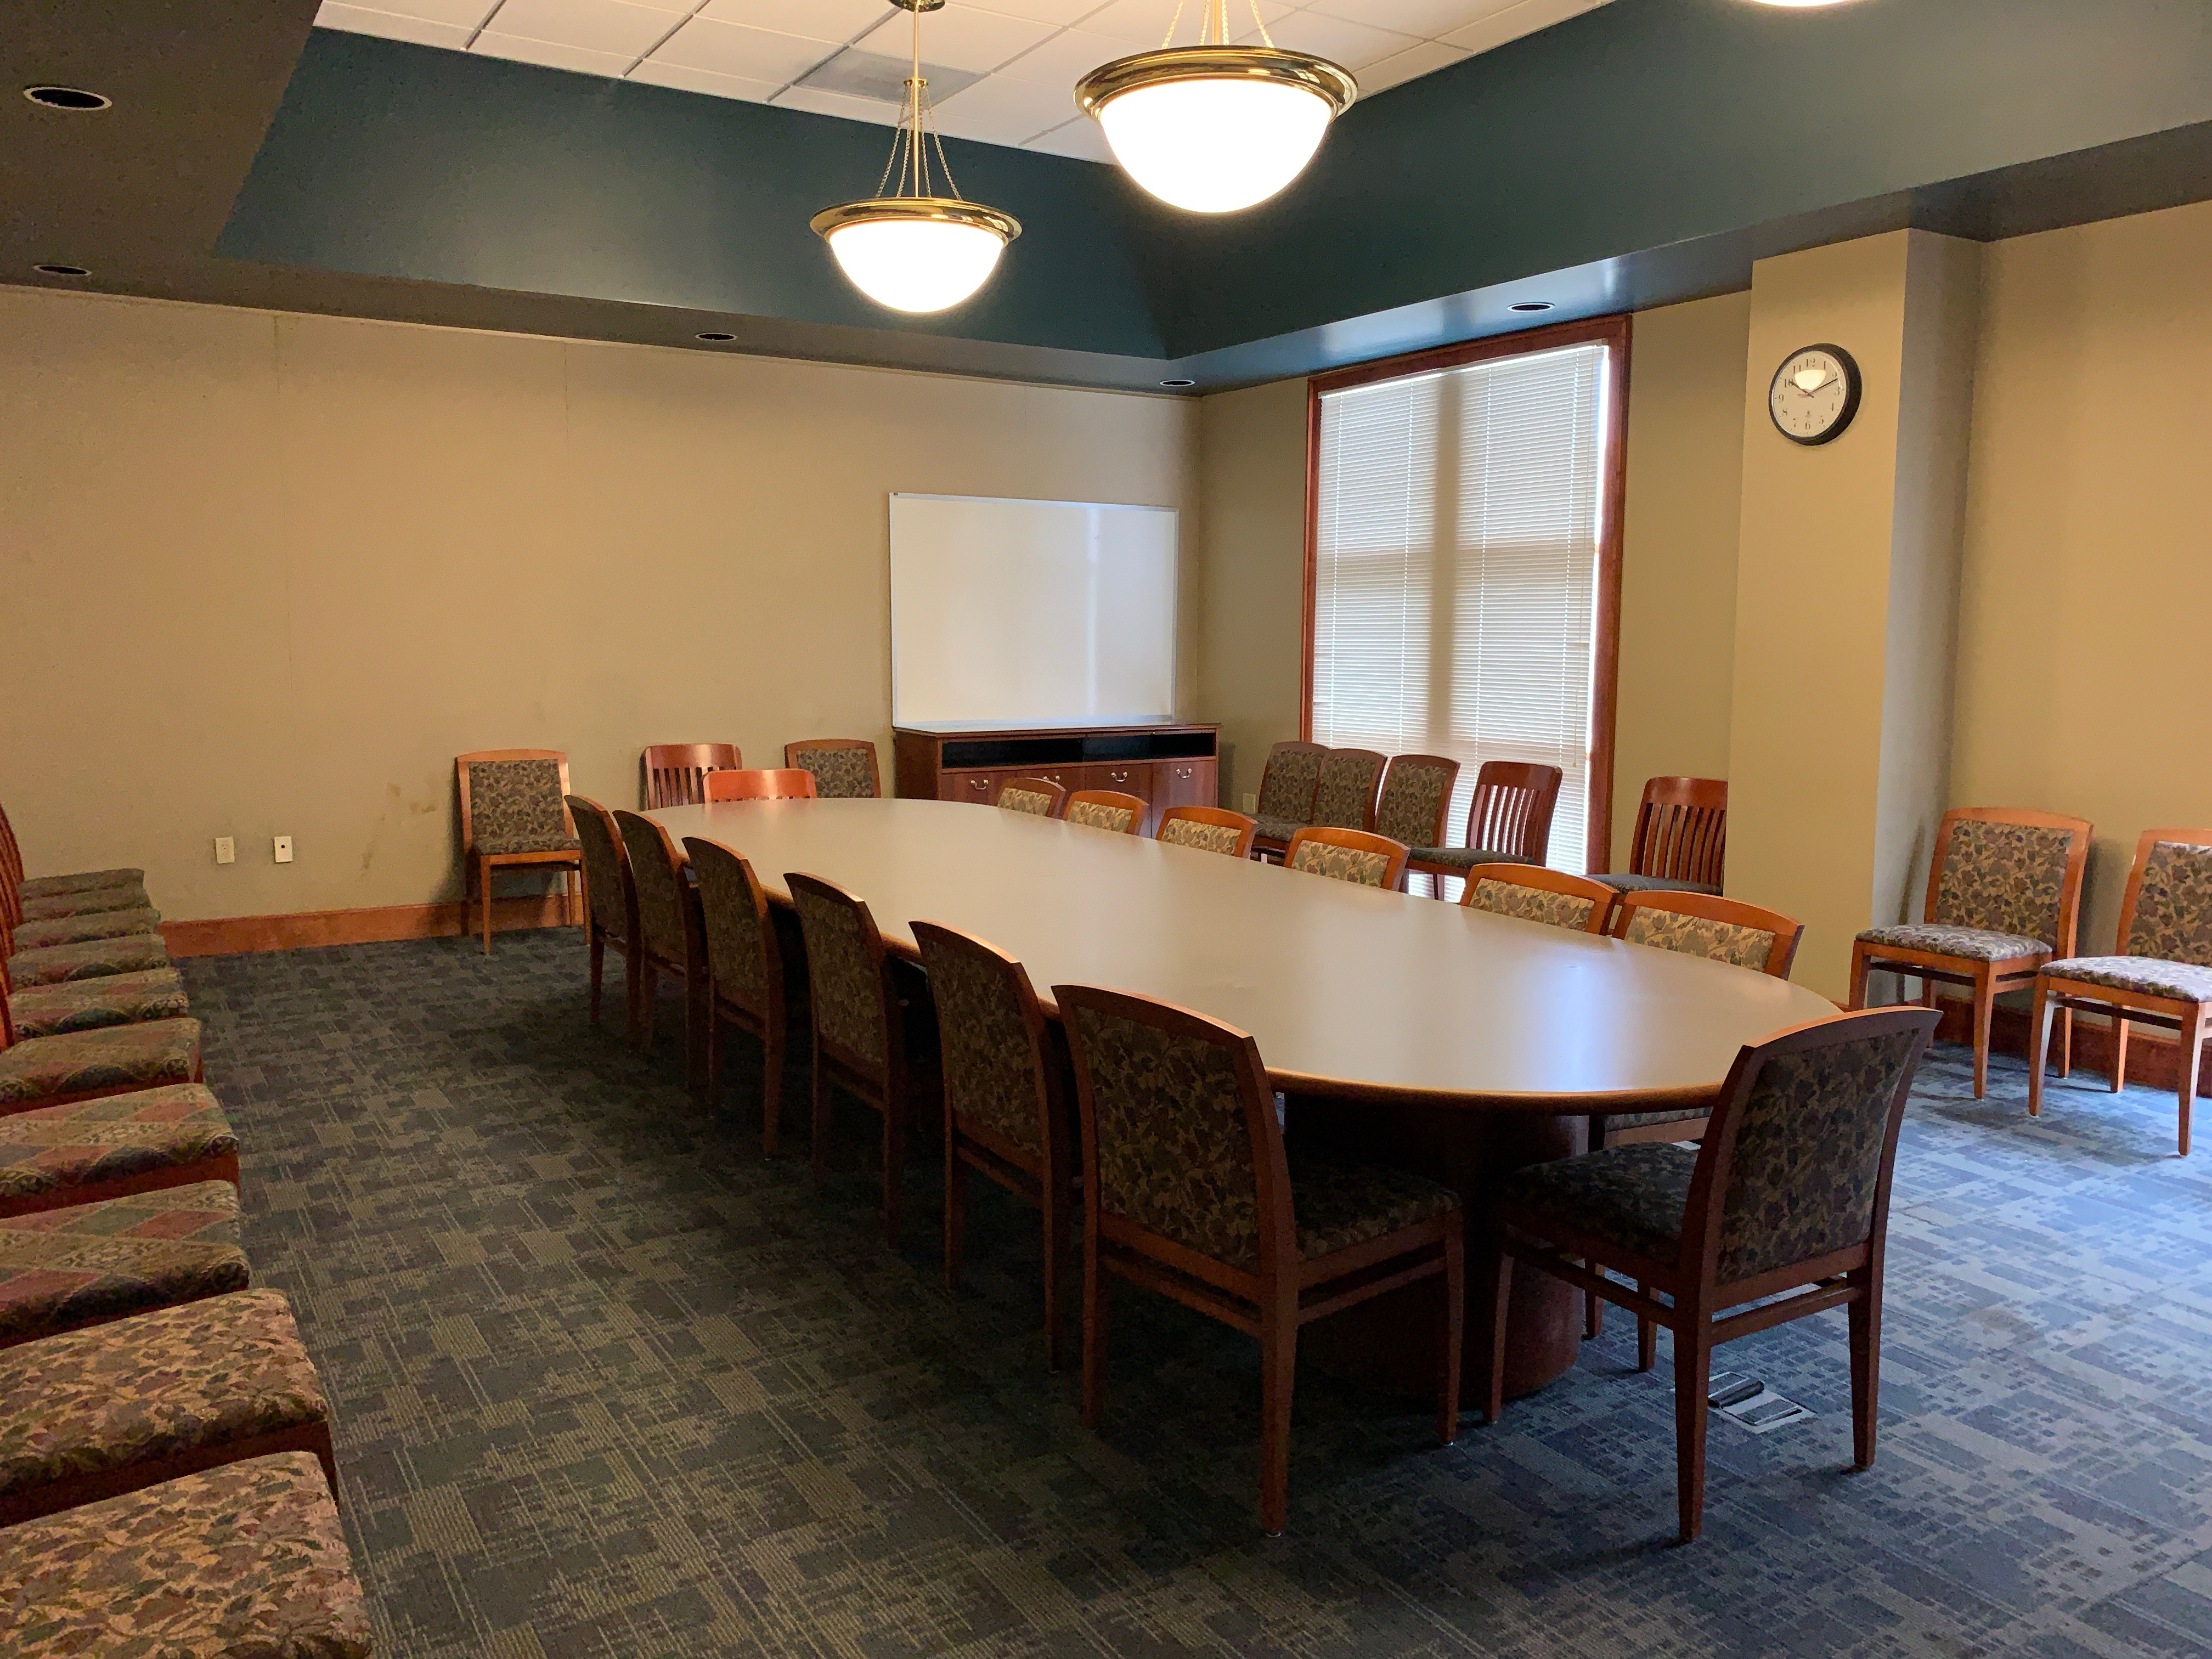 Large Room - Capacity: 55, projector, screen, audio/video equipment